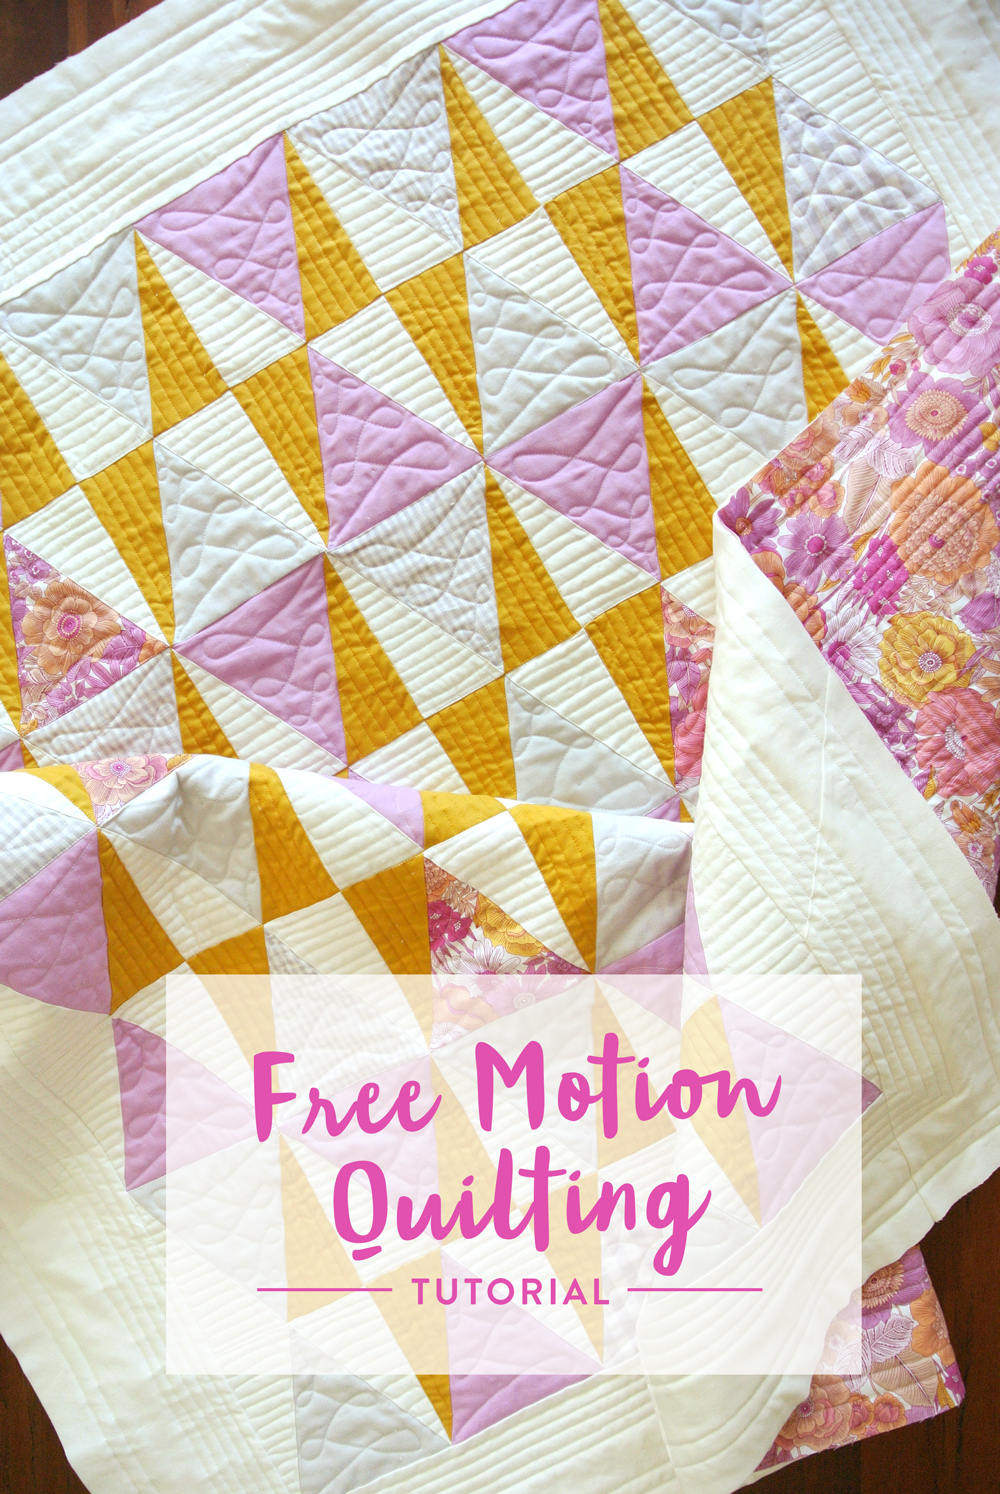 Free Motion Quilting Tutorial for Beginners - Suzy Quilts : free motion quilting tutorials - Adamdwight.com